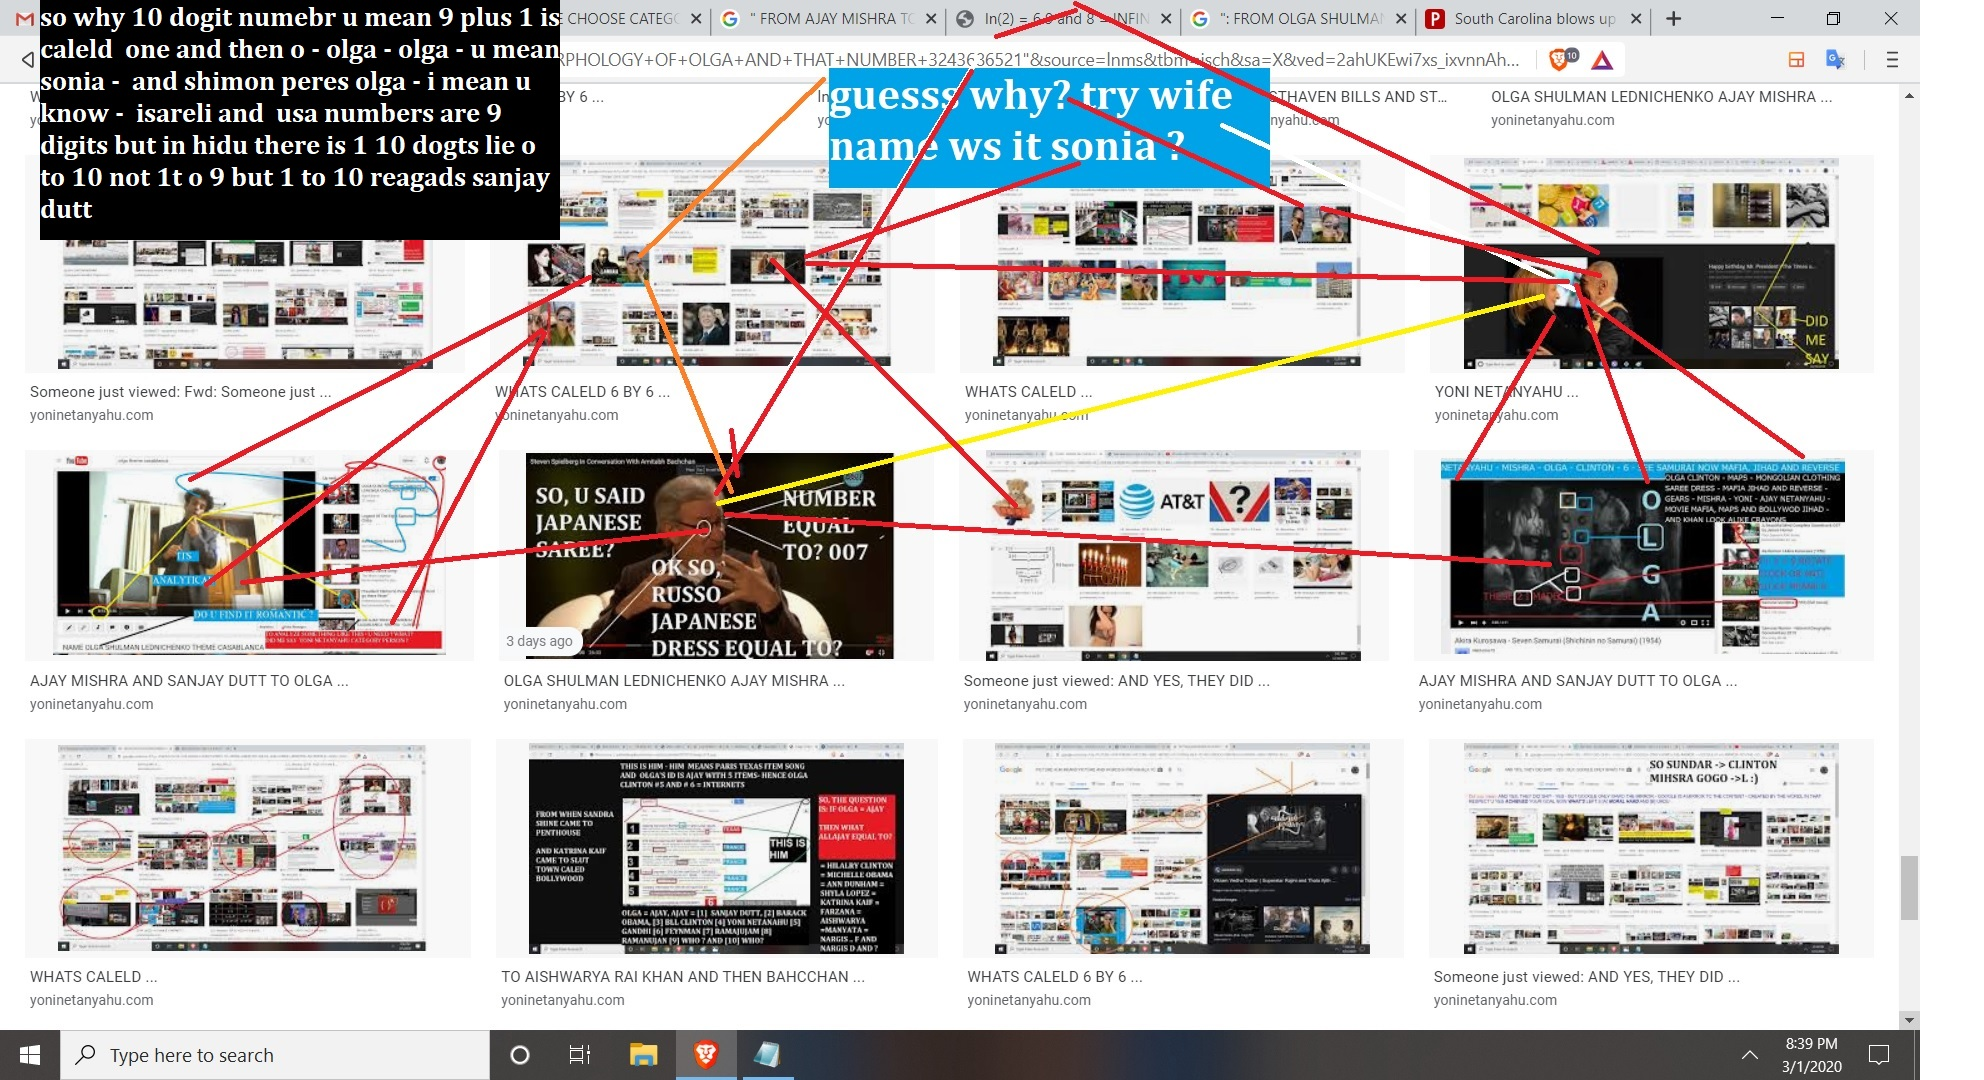 i mean u know - isareli and usa numbers are 9 digits but in hidu there is 1 10 dogts lie o to 10 not 1t o 9 but 1 to 10 reagads sanjay d